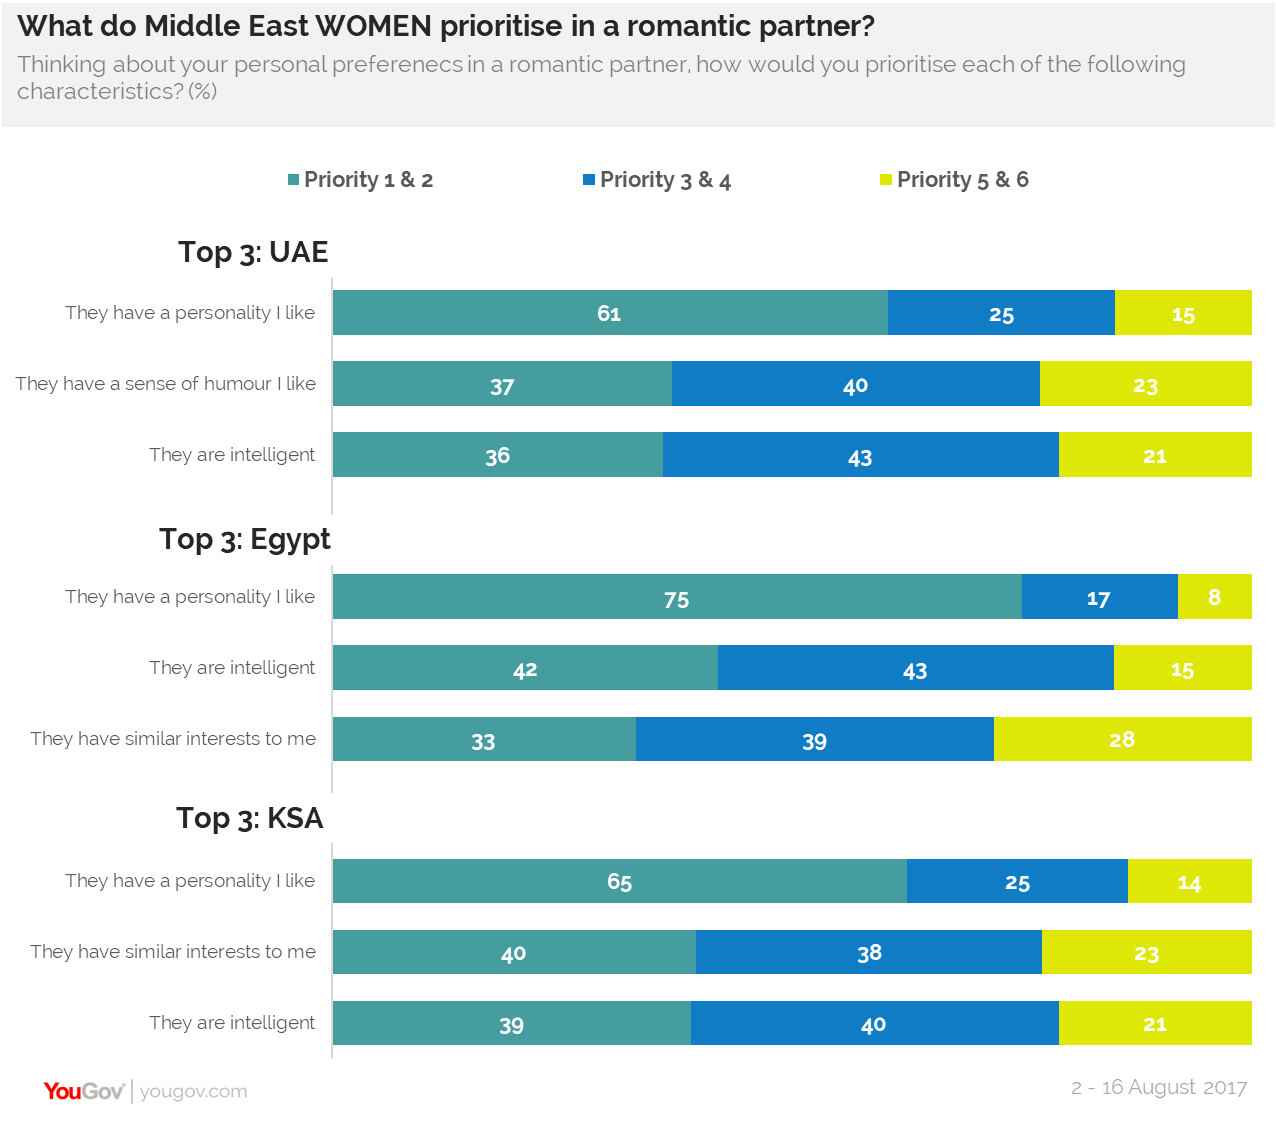 What do Middle East women prioritize in a romantic partner?